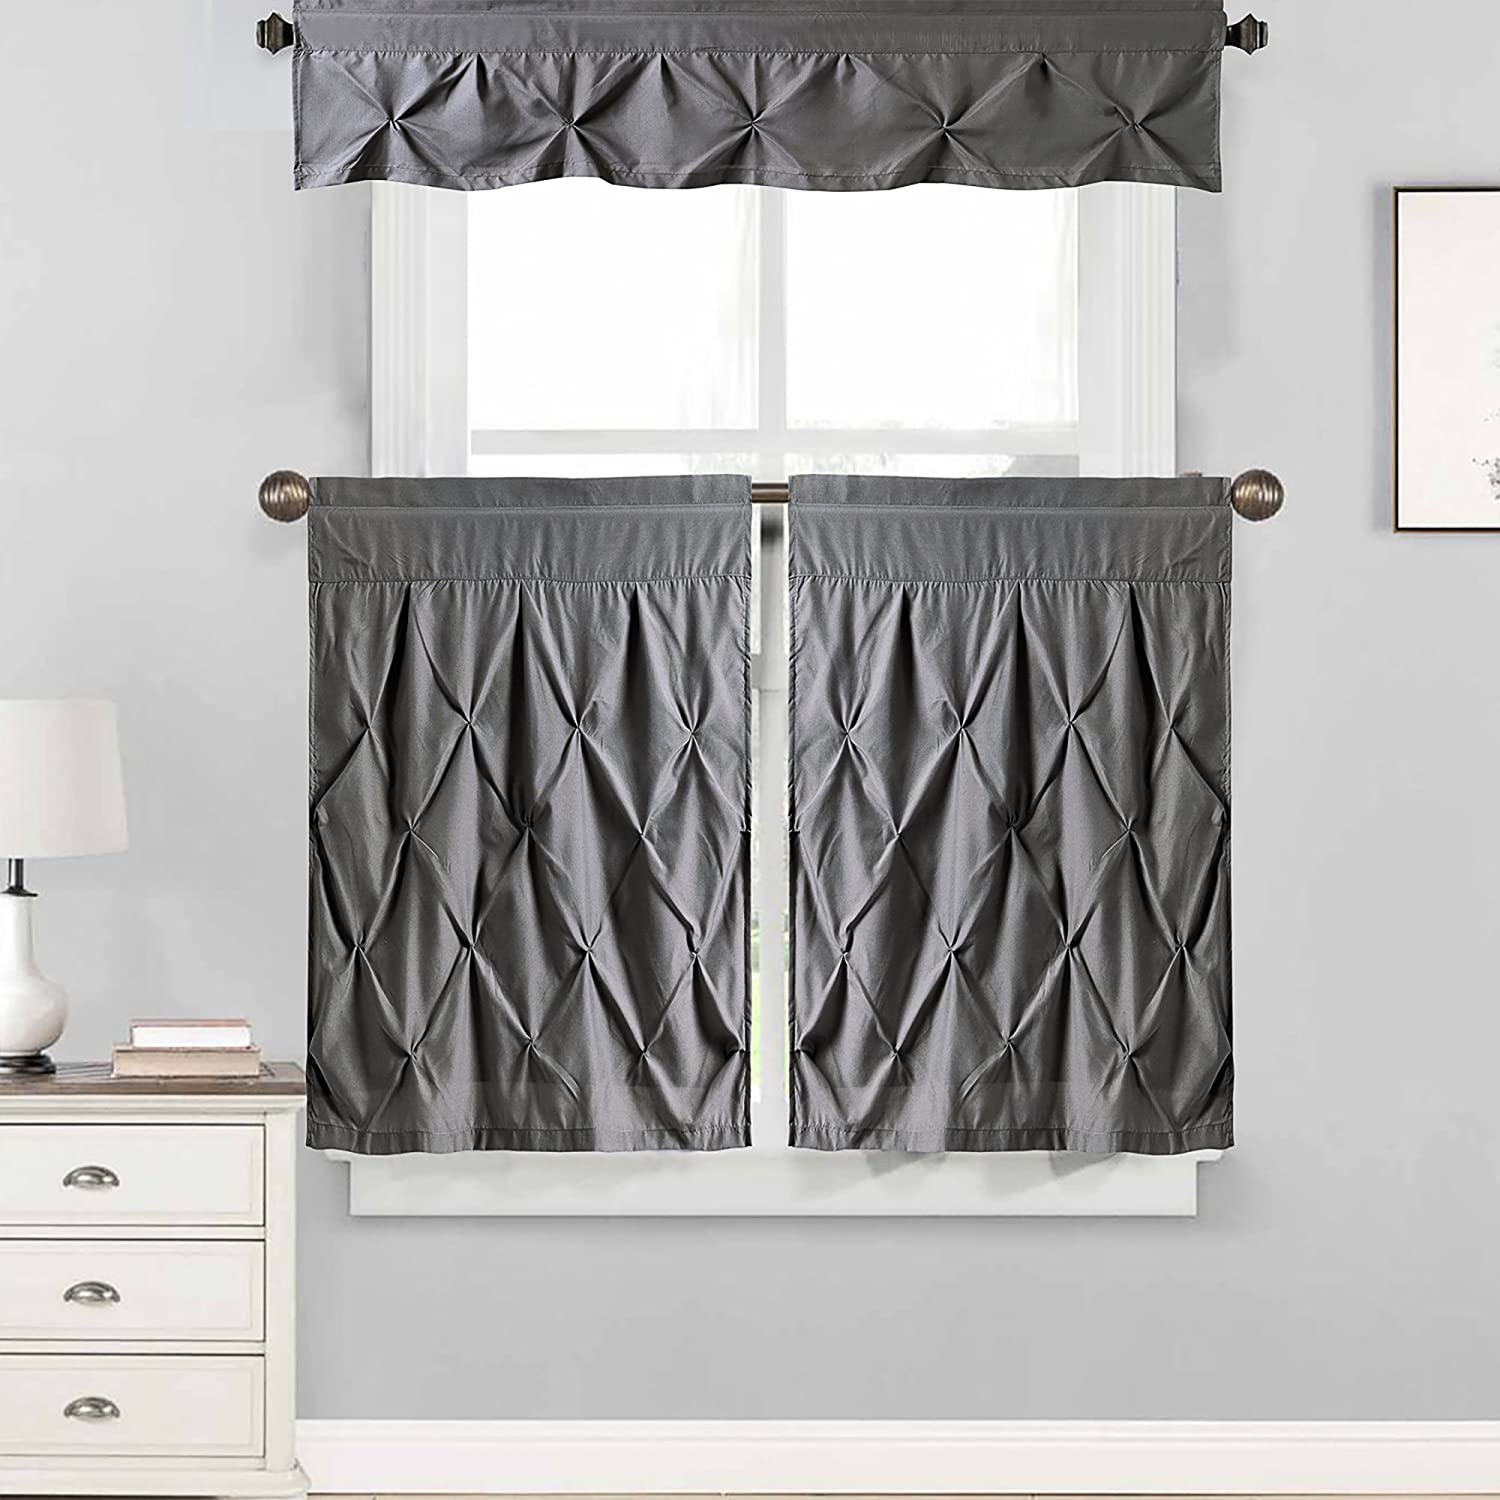 Pinkch pleat kitchen curtain